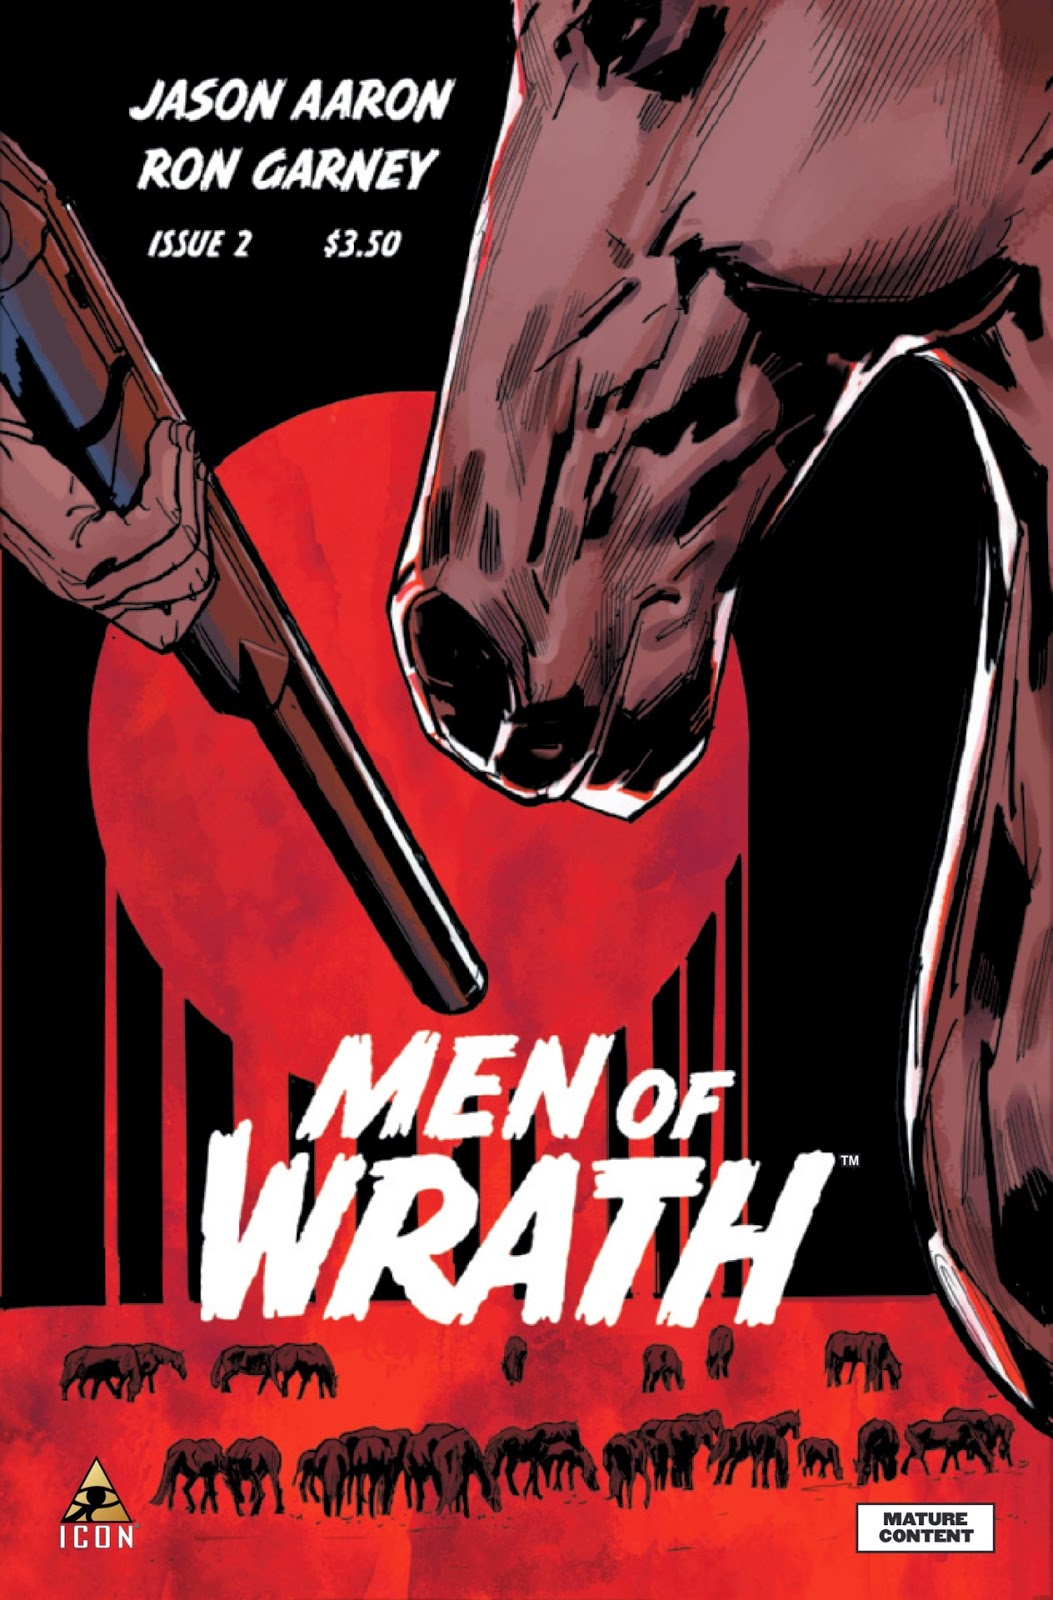 Review of Men of Wrath 2 by Aaron and Garney